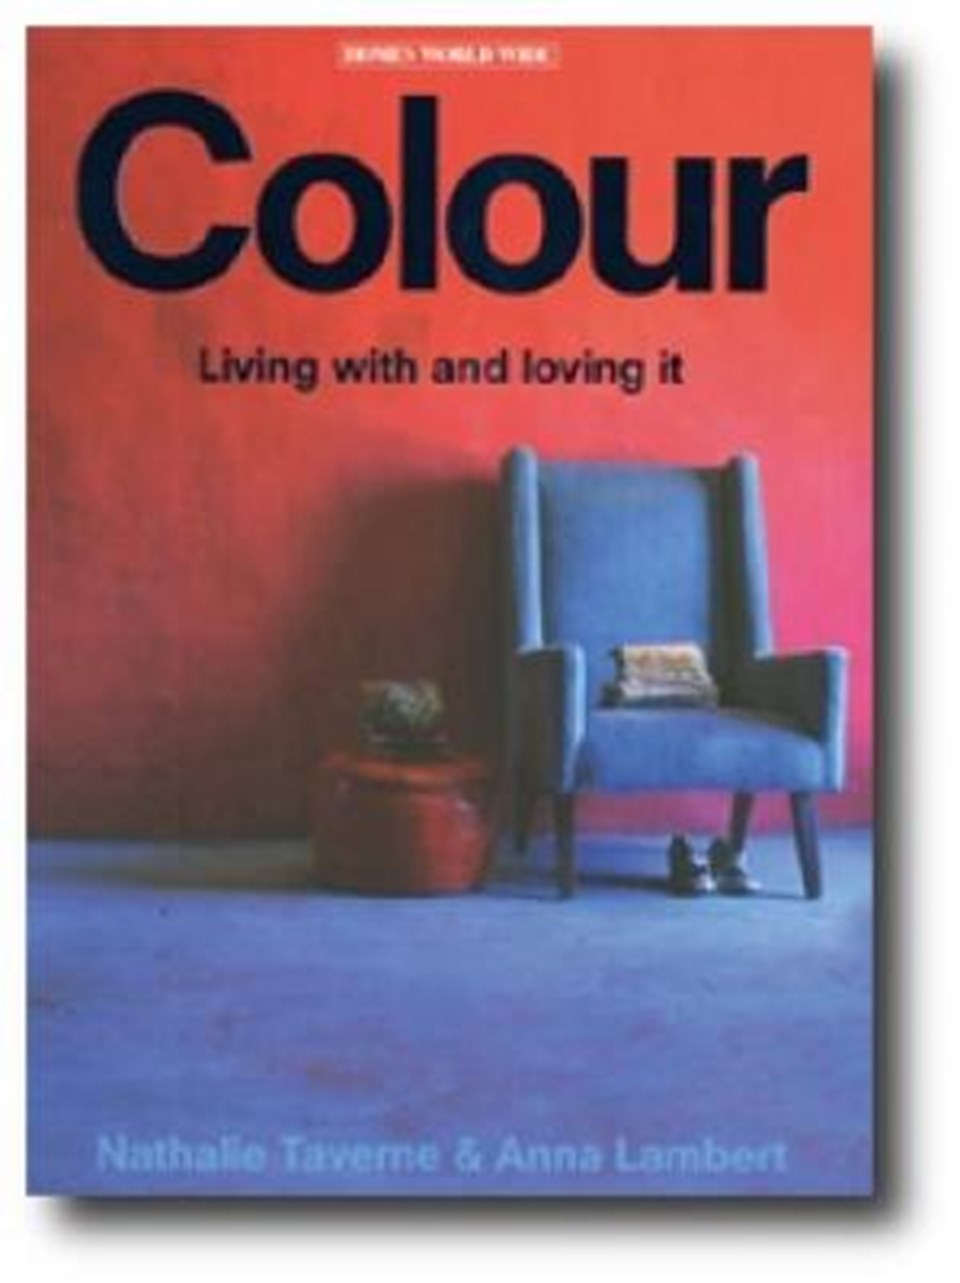 Colour - Living with and loving it